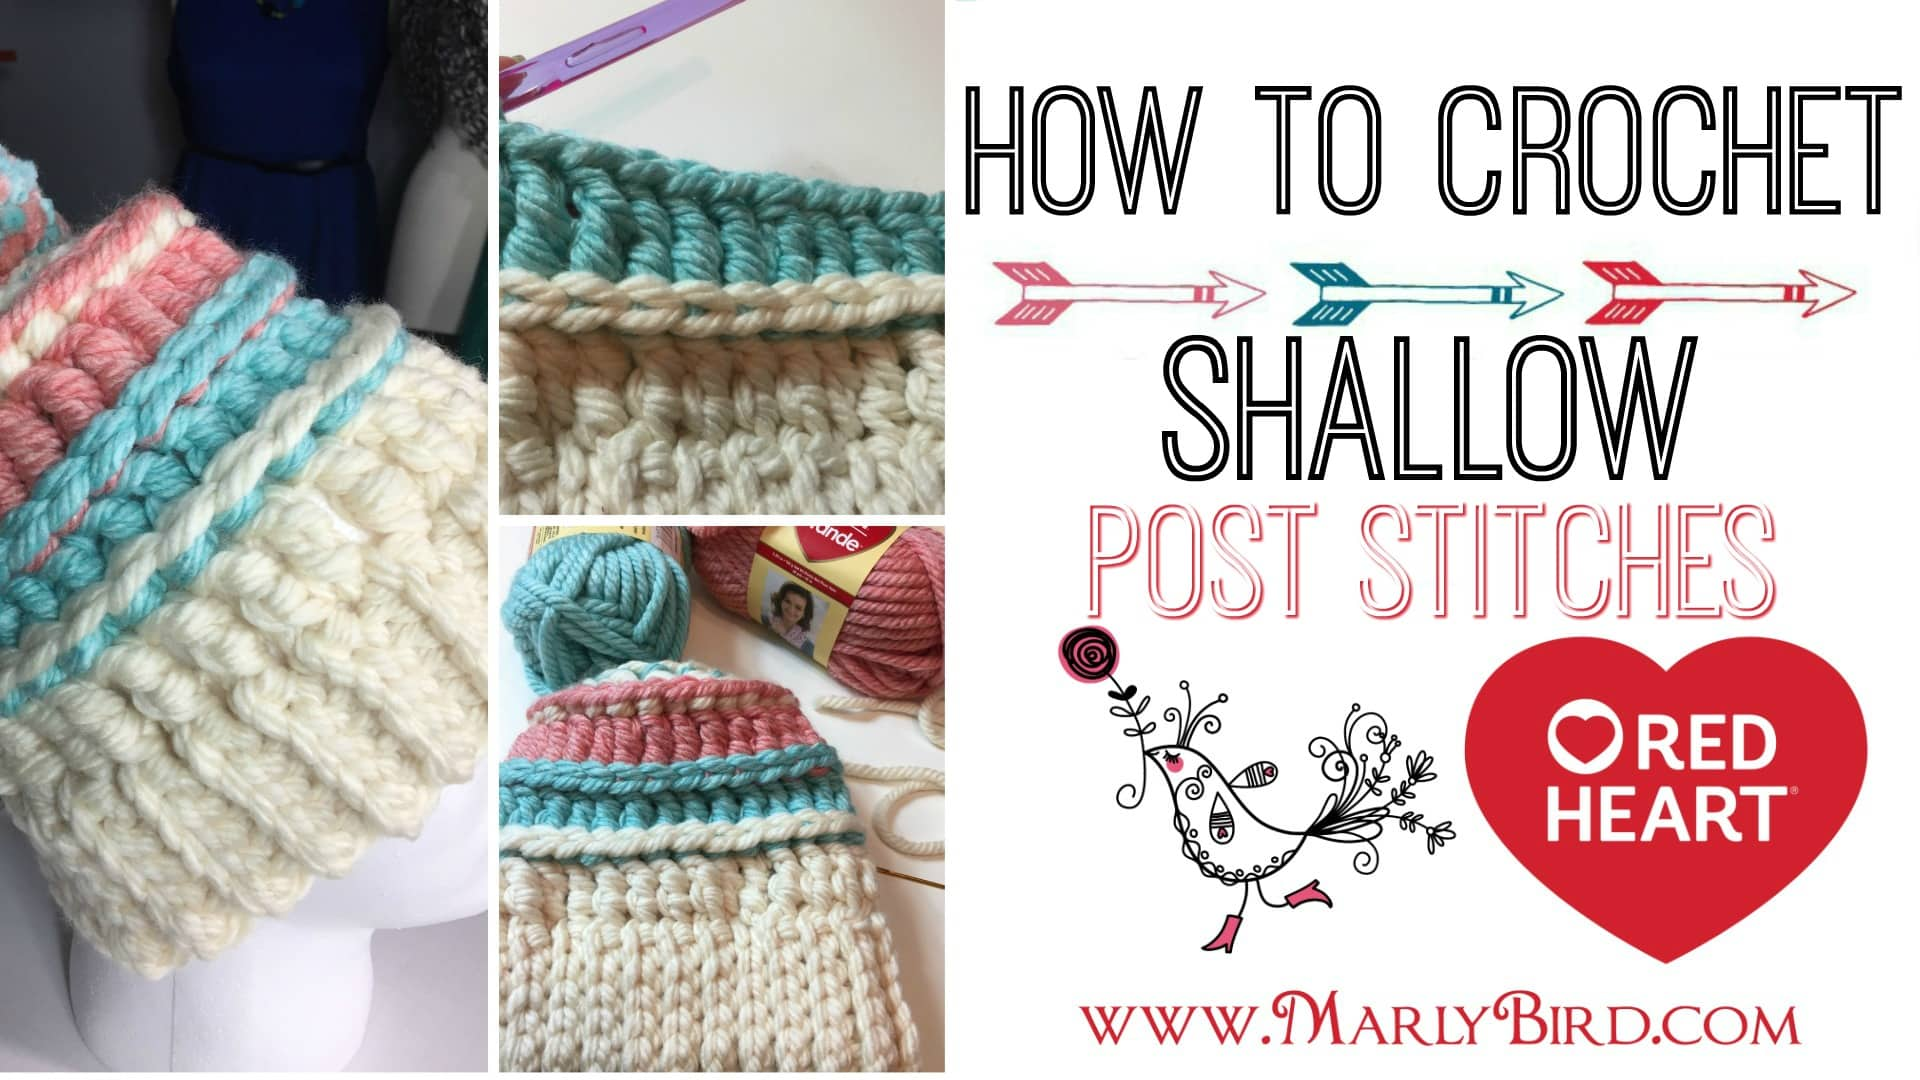 How to Crochet Shallow Post Stitches Tutorial